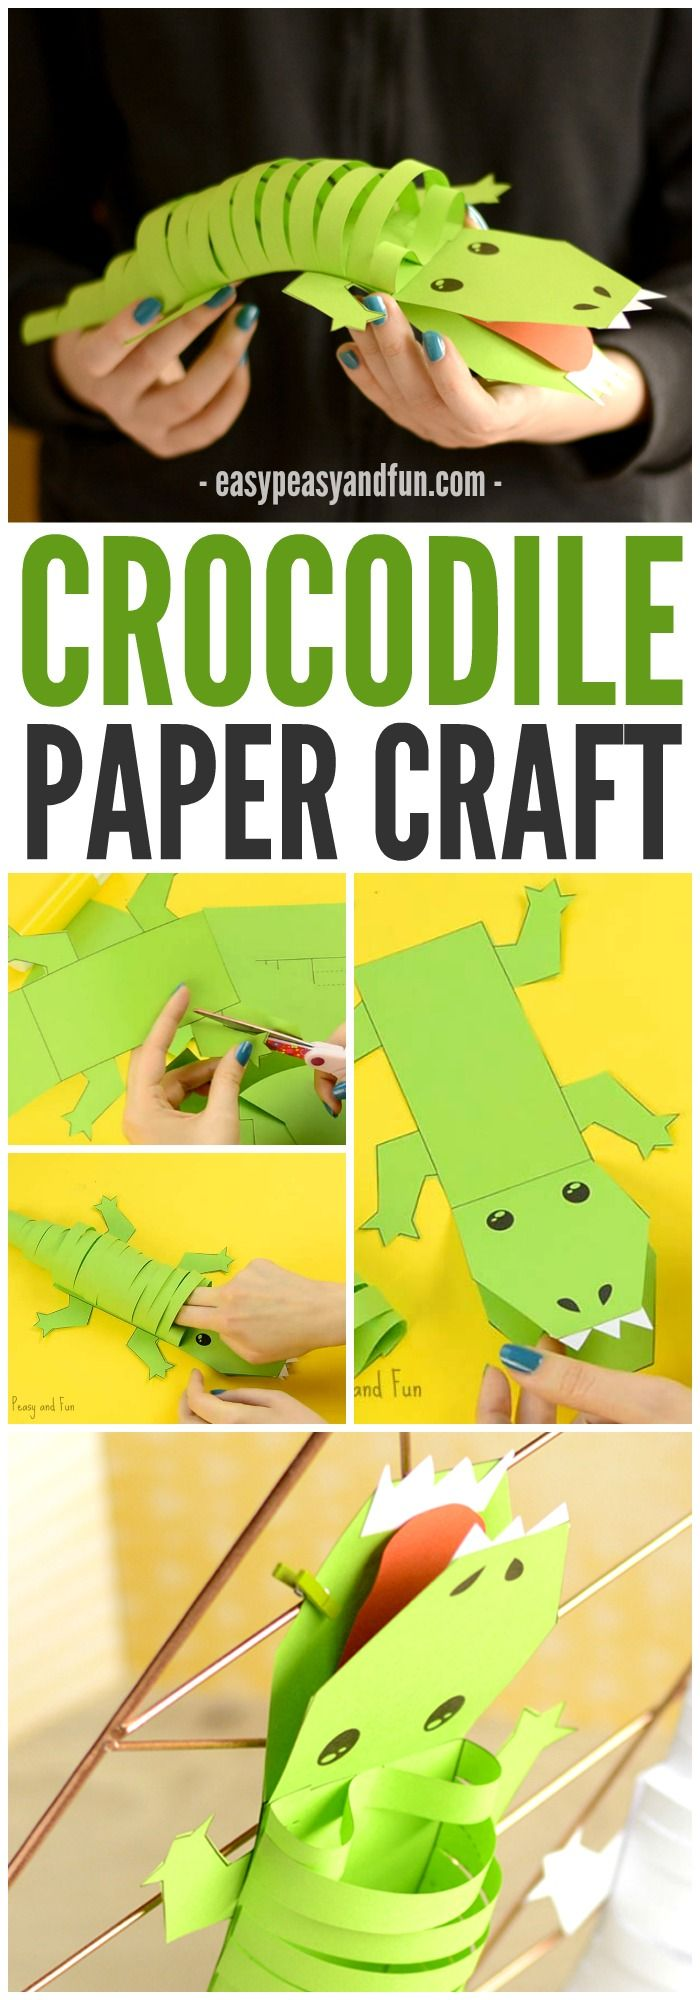 340 best Arts, Crafts, and Activities images on Pinterest | Crafts ...